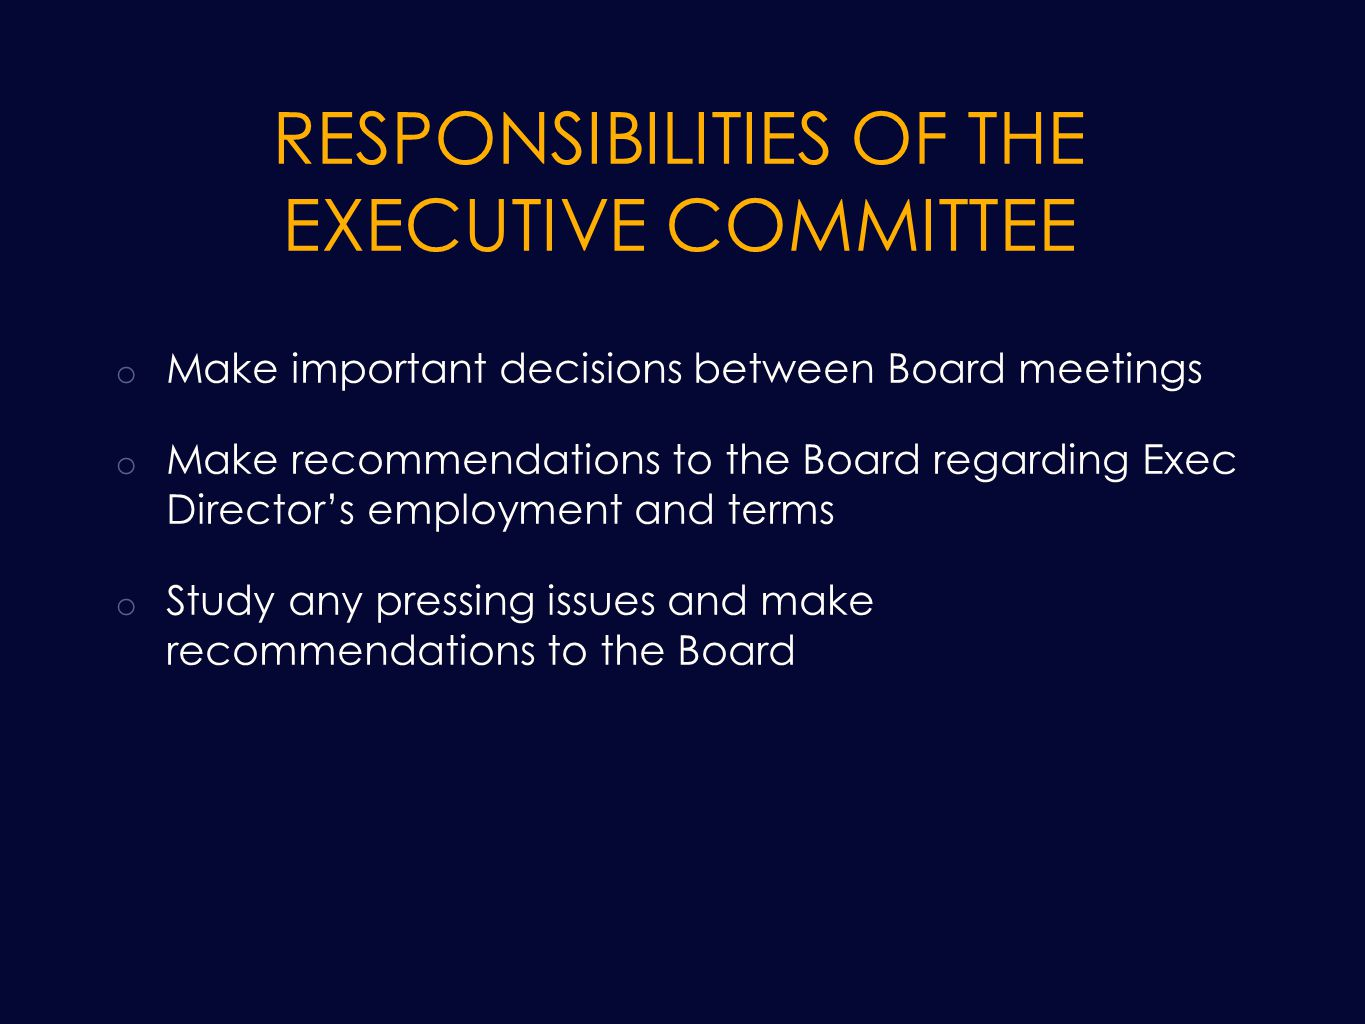 RESPONSIBILITIES OF THE EXECUTIVE COMMITTEE o Make important decisions between Board meetings o Make recommendations to the Board regarding Exec Director's employment and terms o Study any pressing issues and make recommendations to the Board